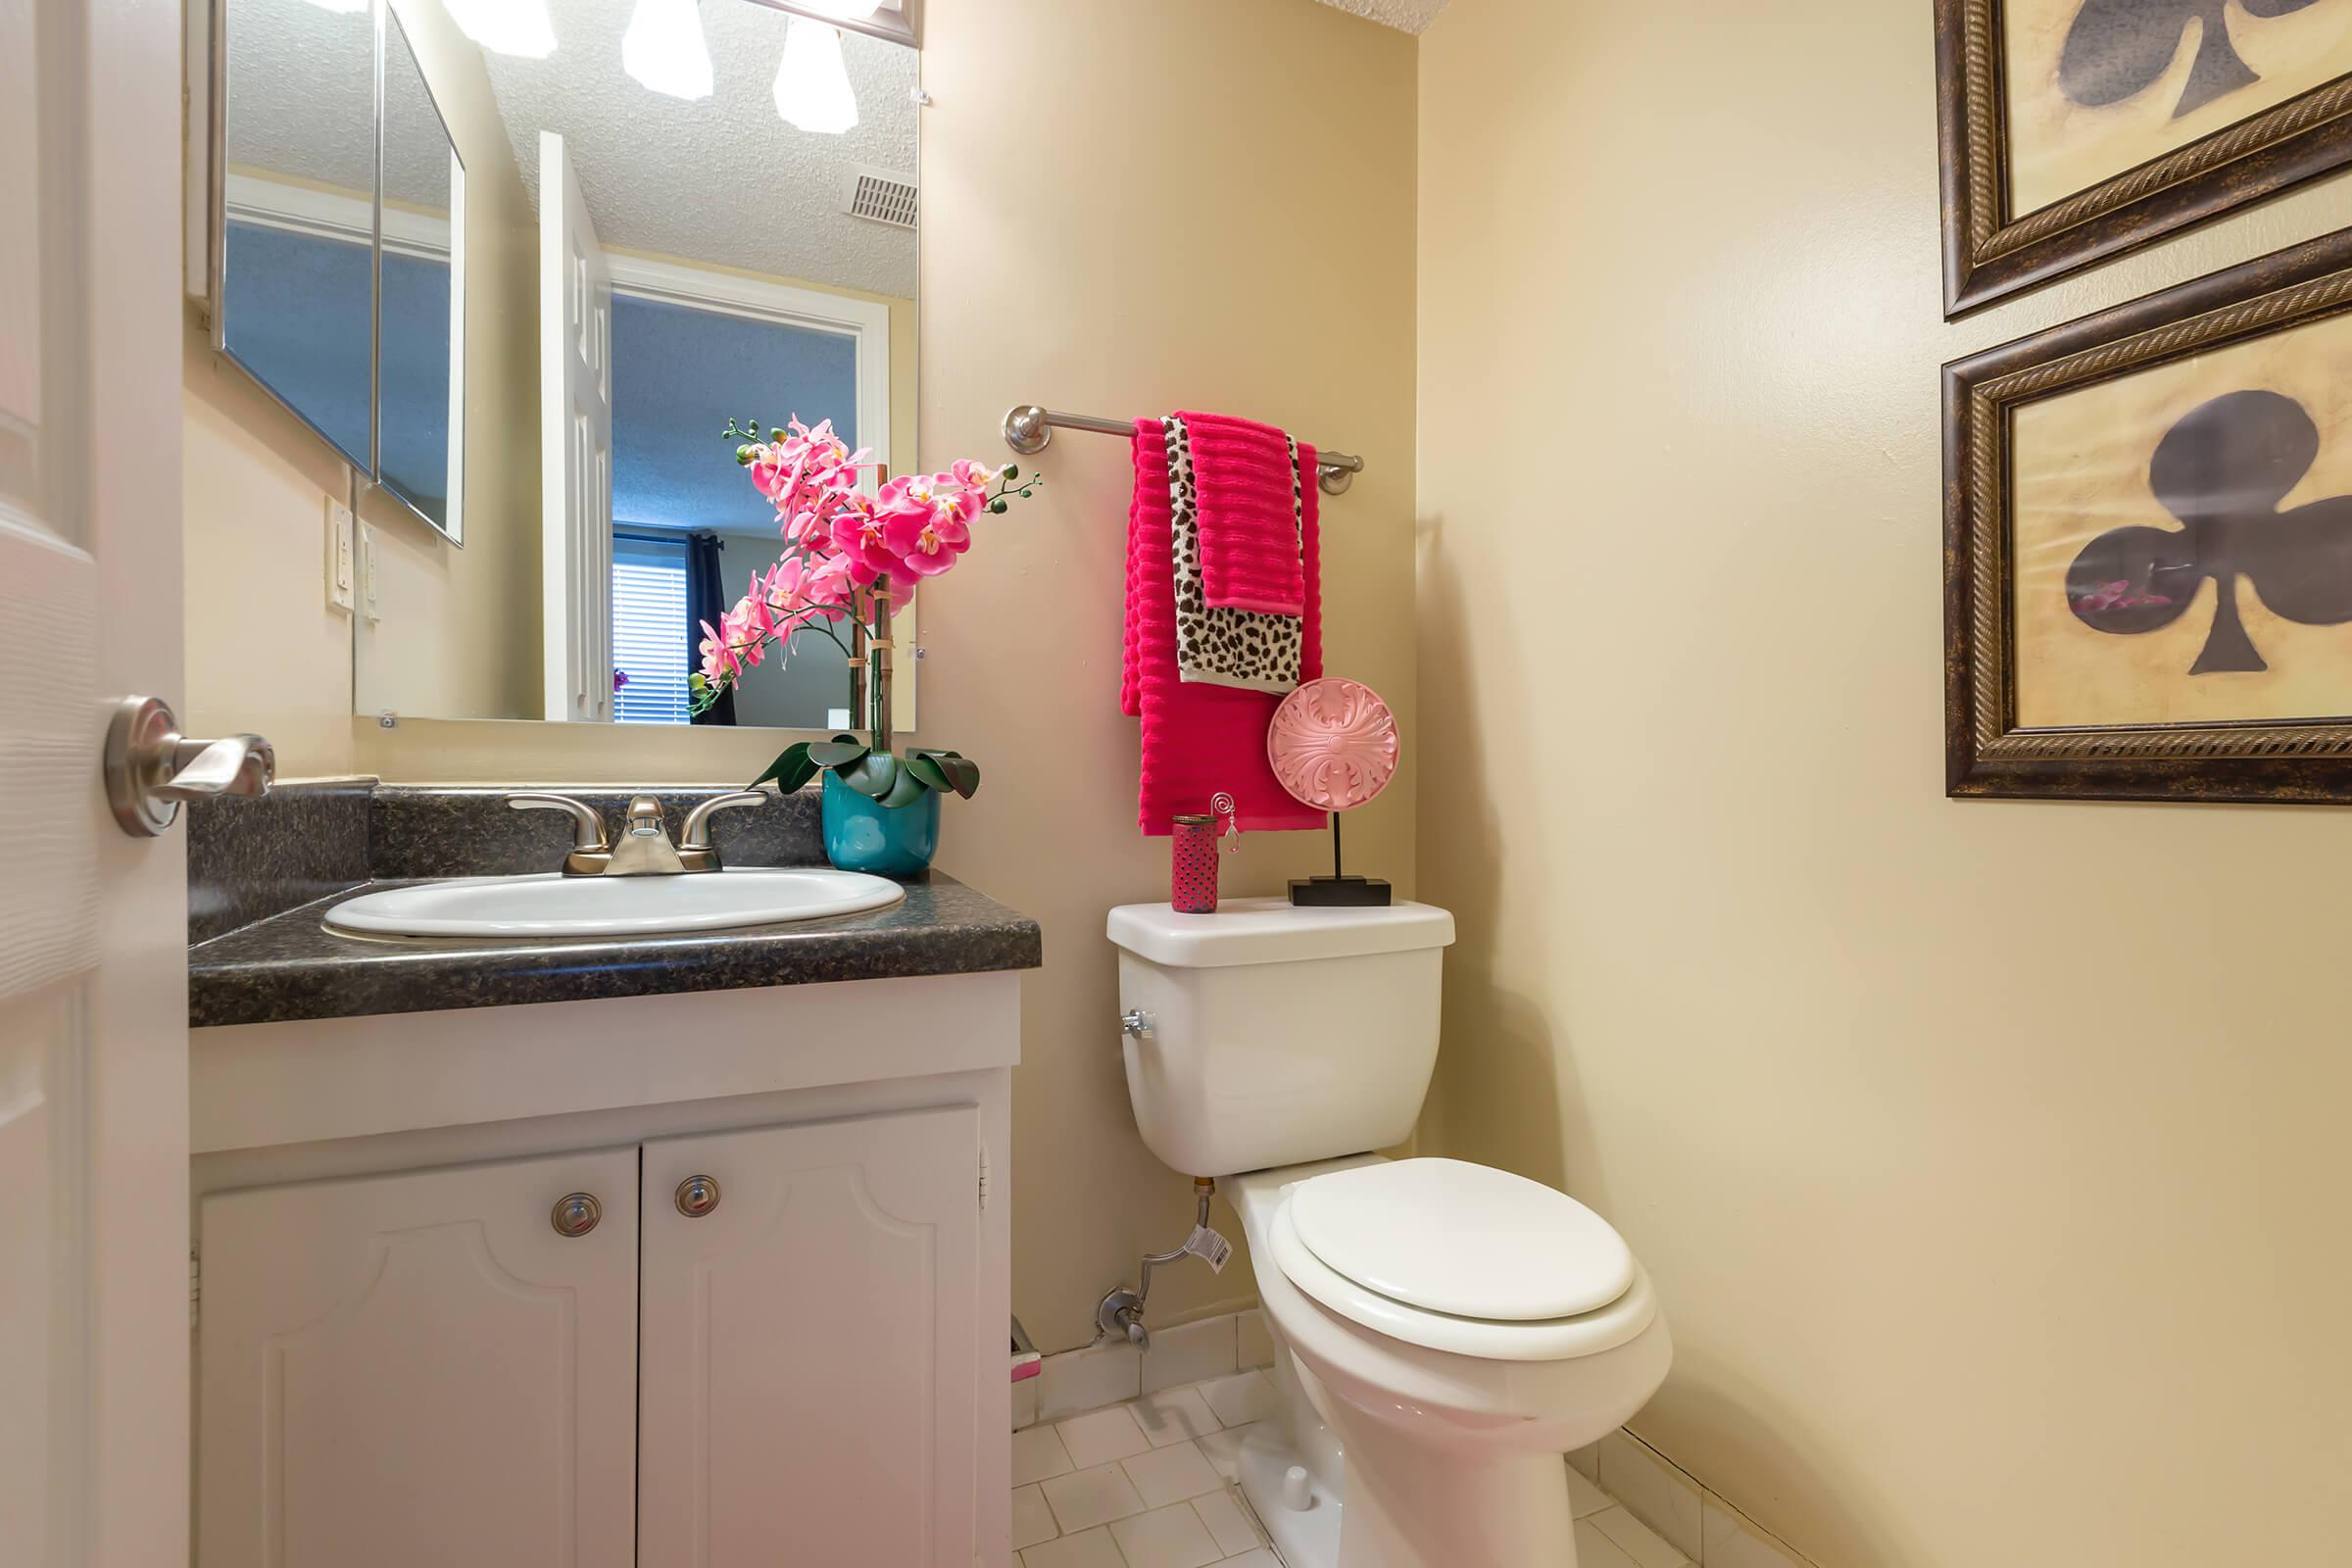 Modern Bathroom Here at Kingston Pointe Apartments in Knoxville, Tennessee